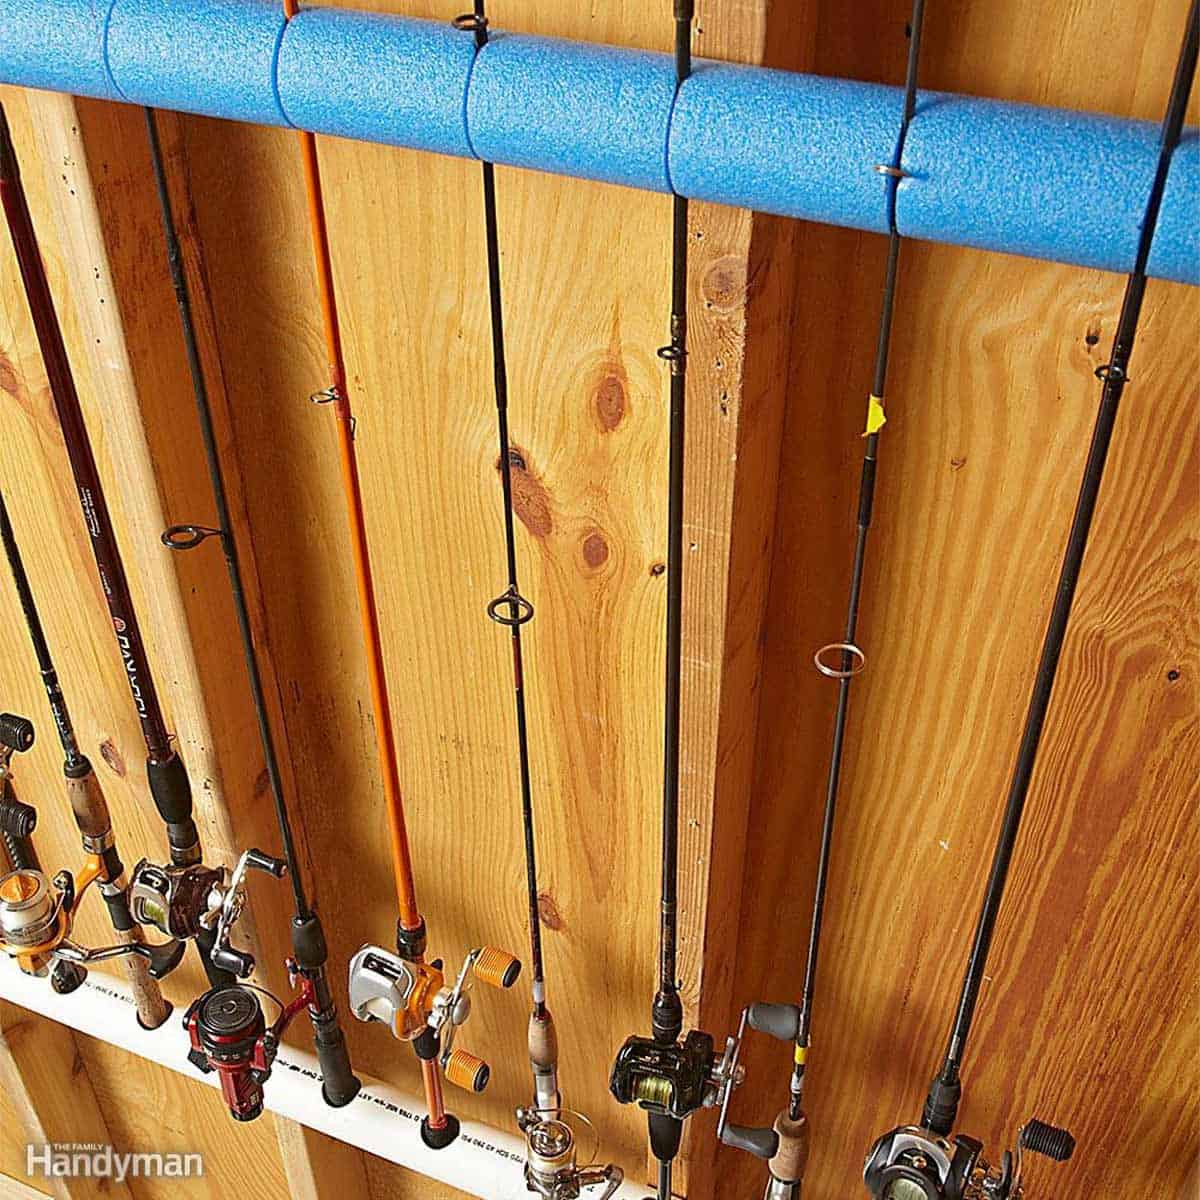 Garage Storage Fishing Poles